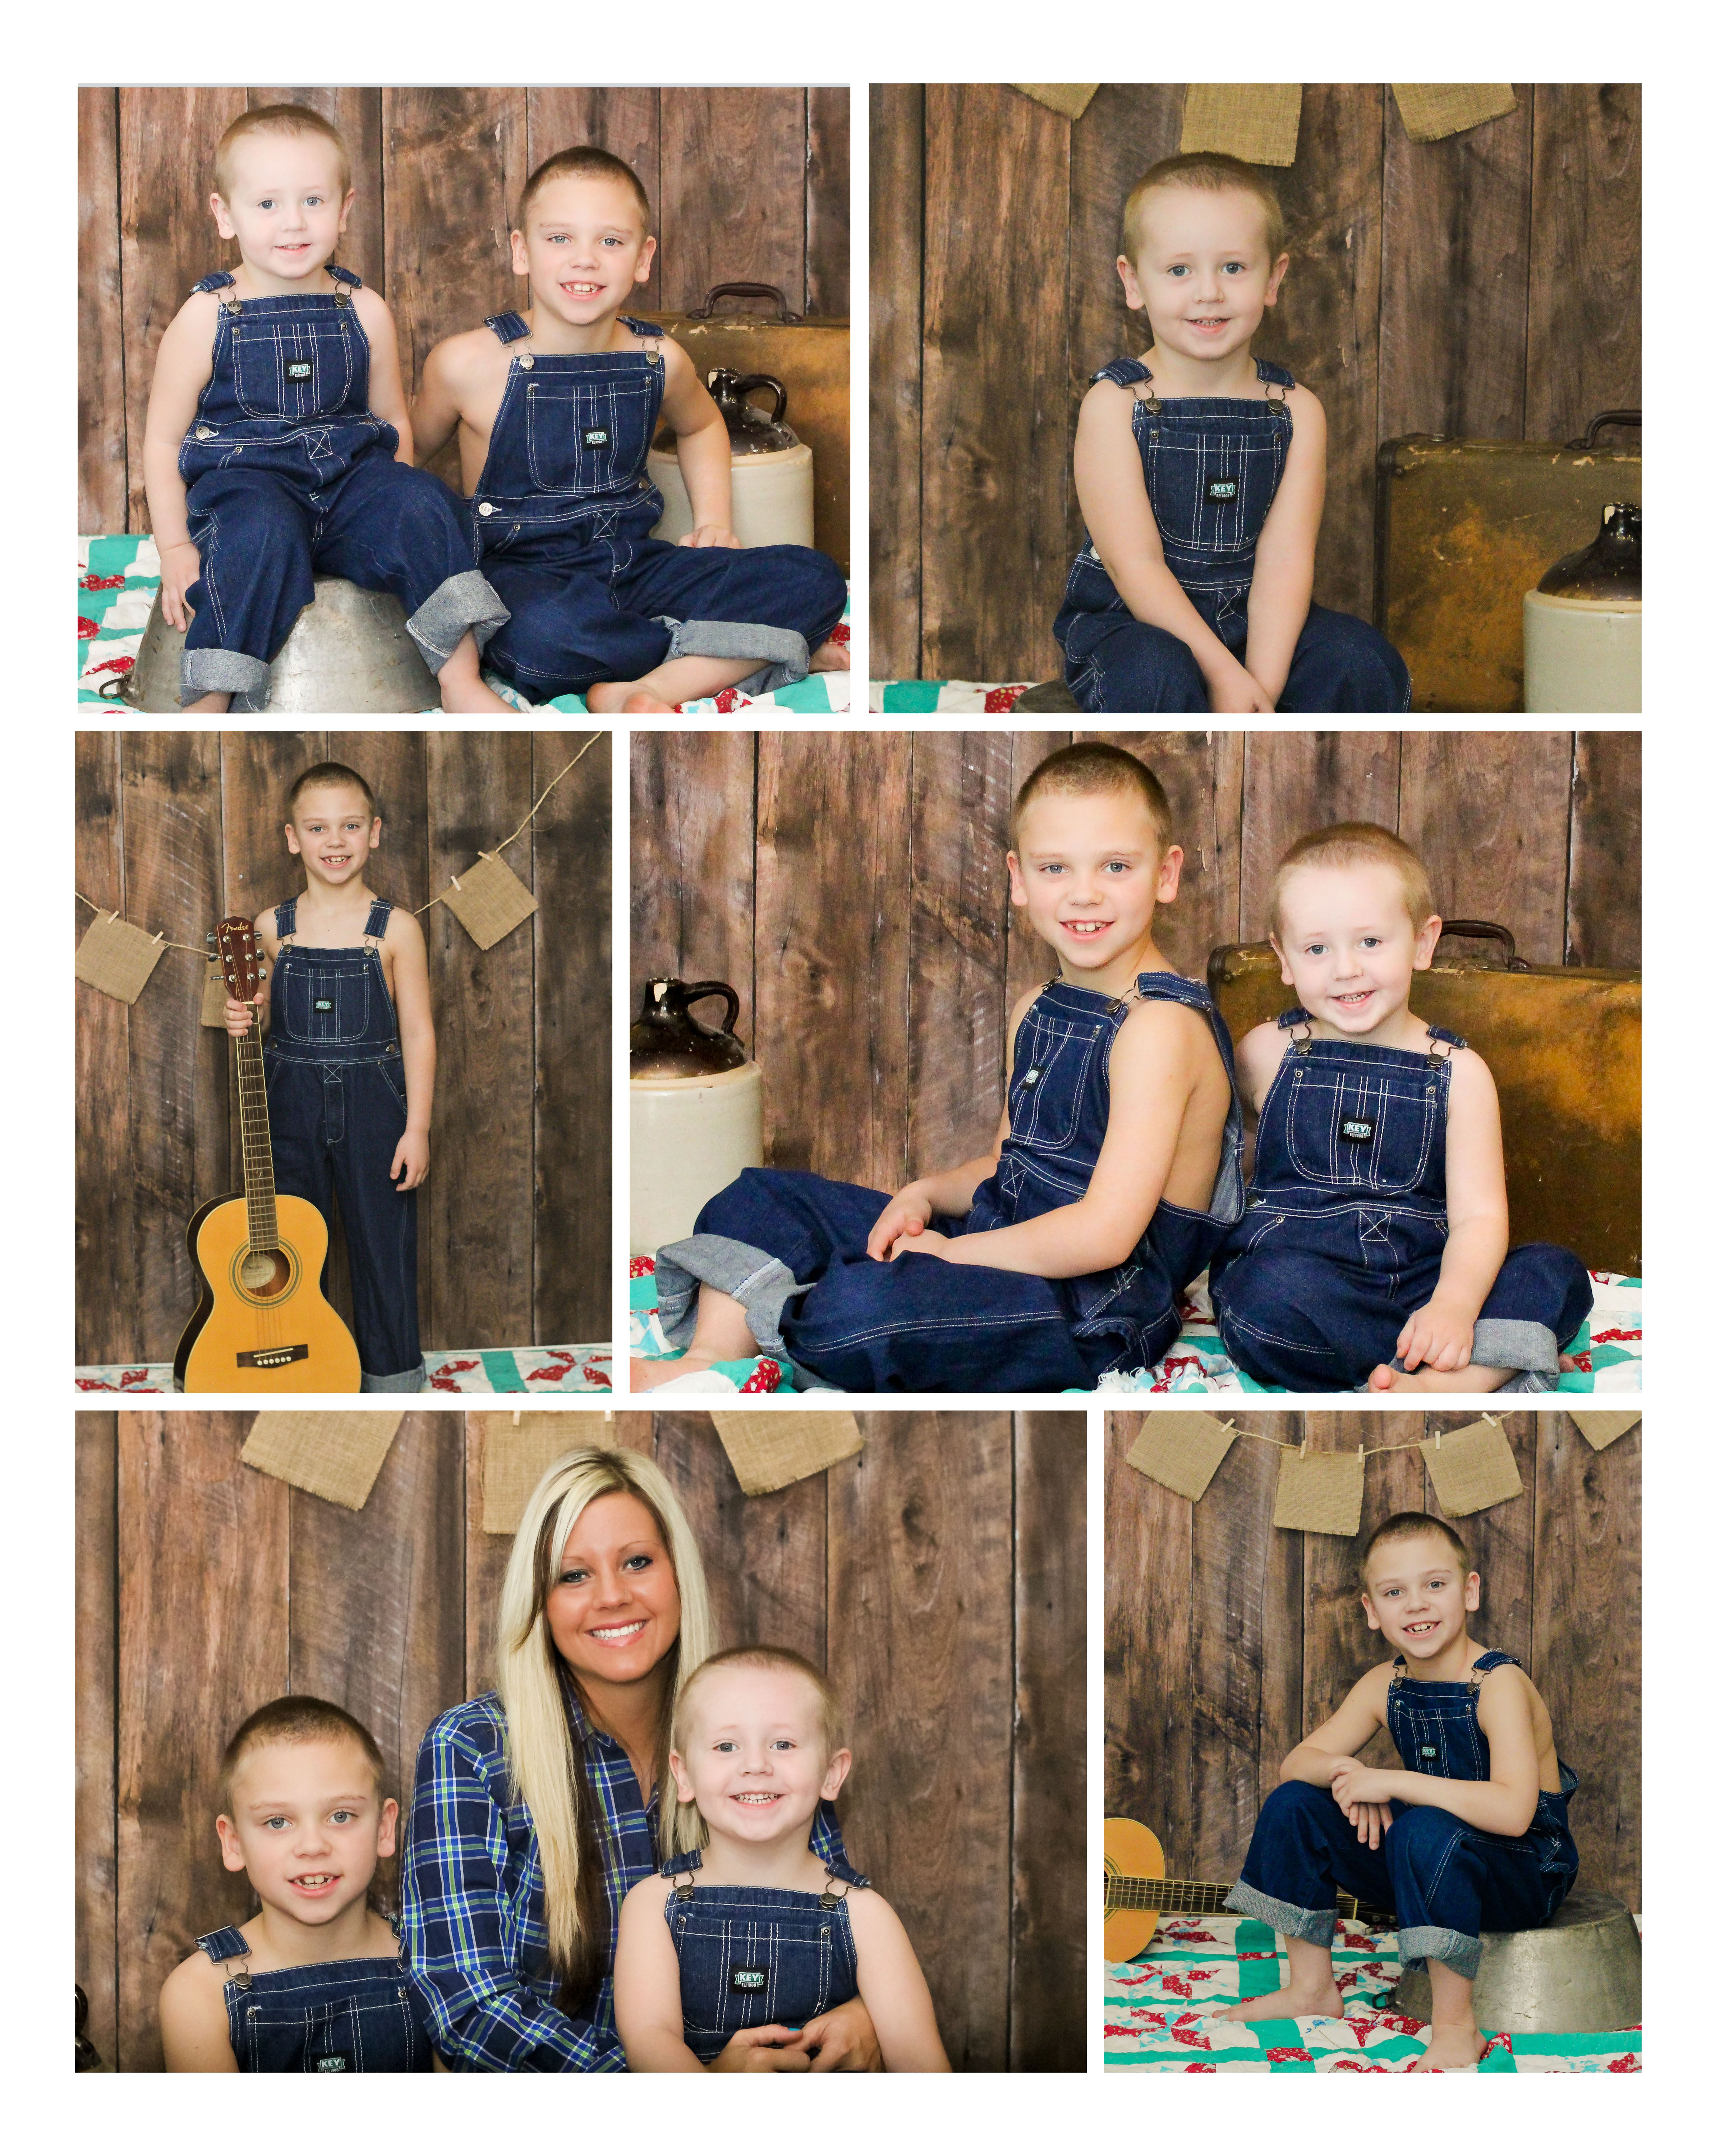 Family photos rustic ideas for pictures bothers overalls country boys harper mason photography